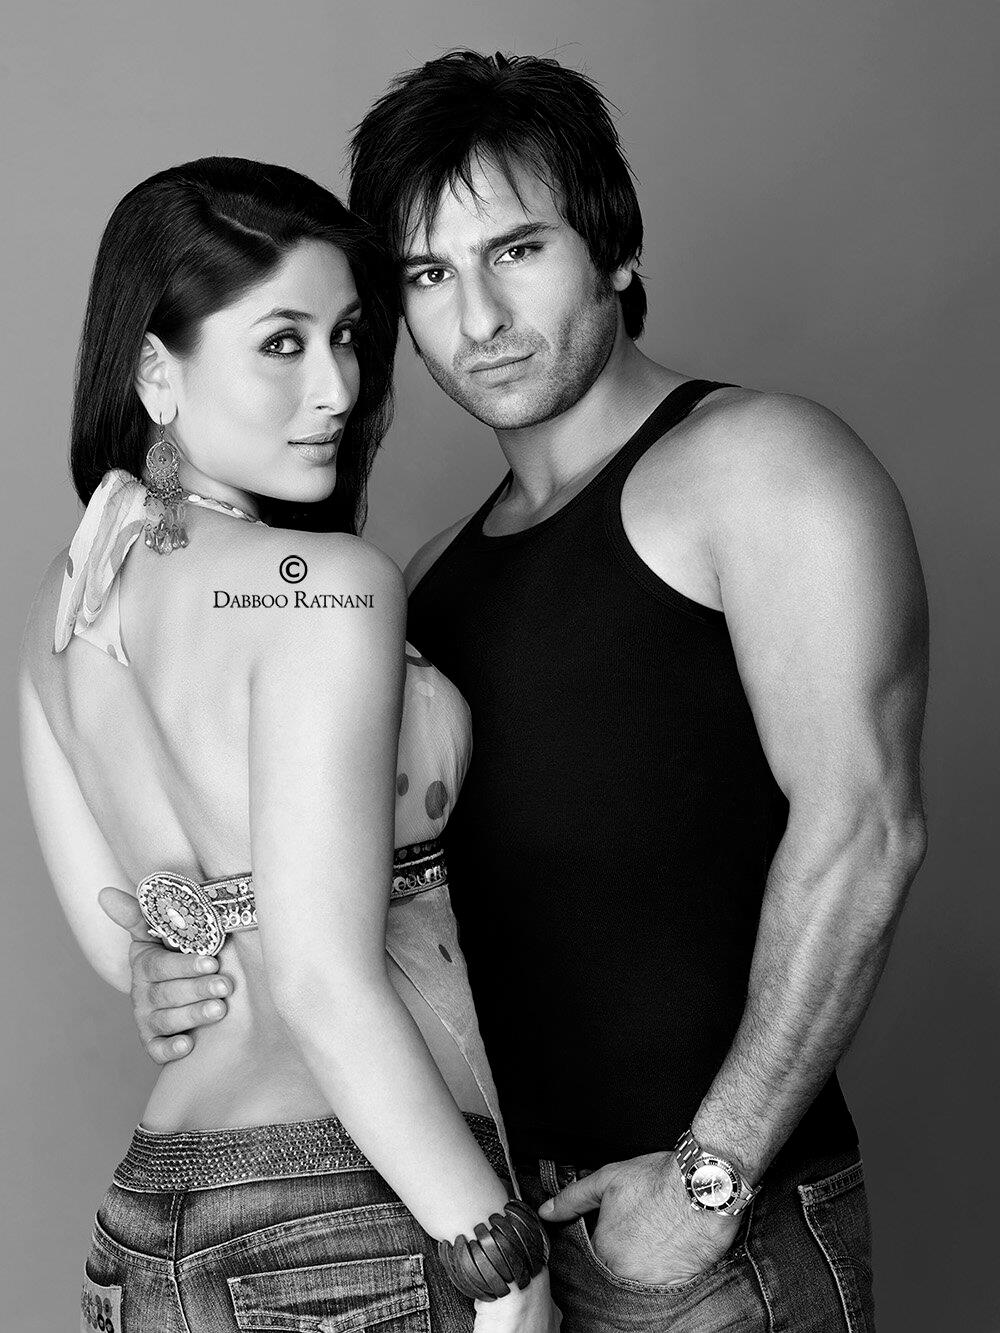 Saif Kareena Firs Photo Shoot 2005